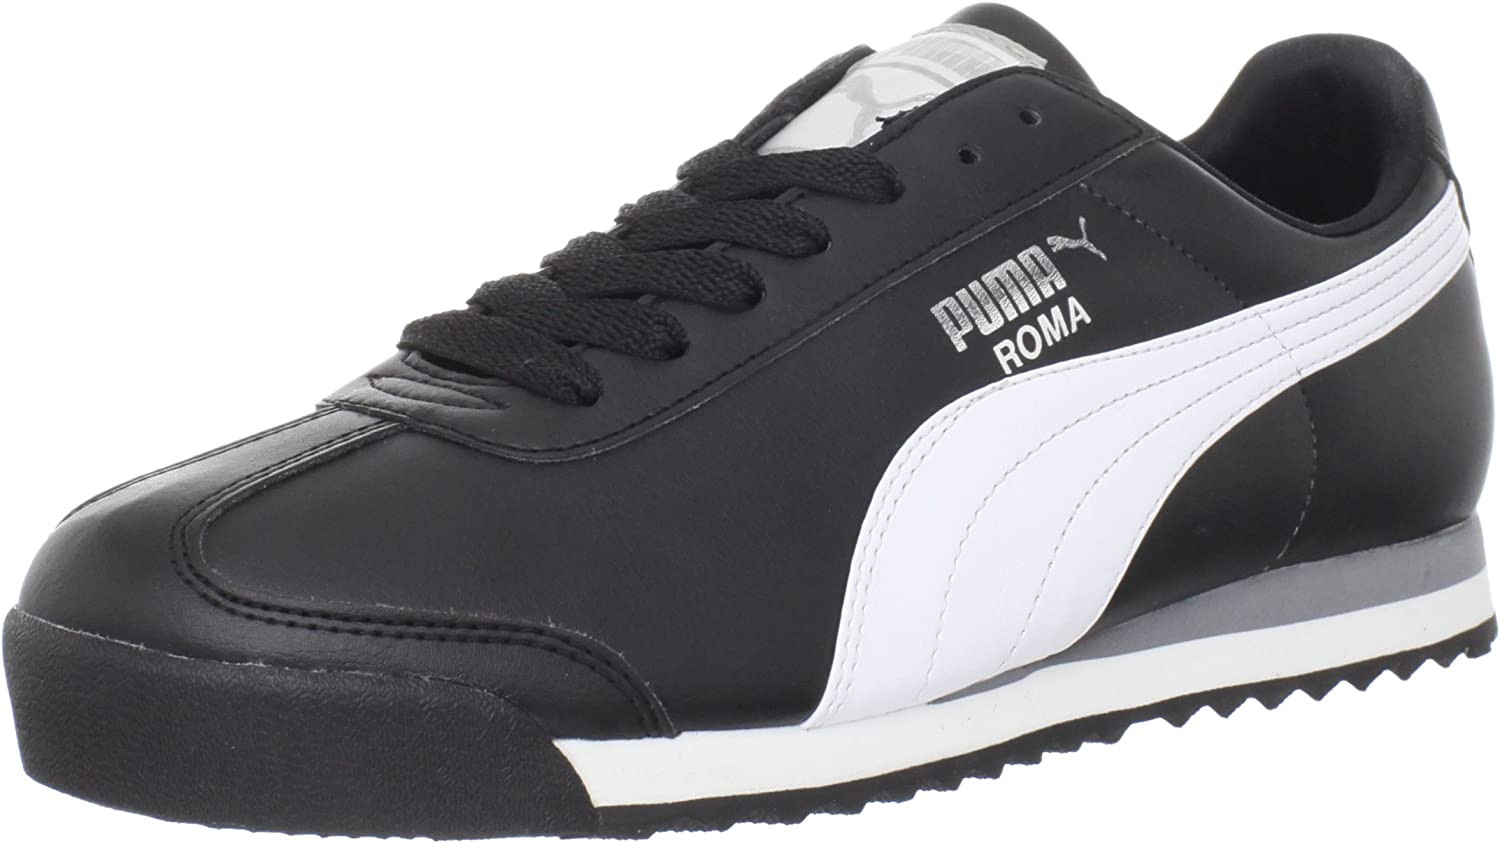 PUMA Best Cycling Shoes For Your Wide Feet